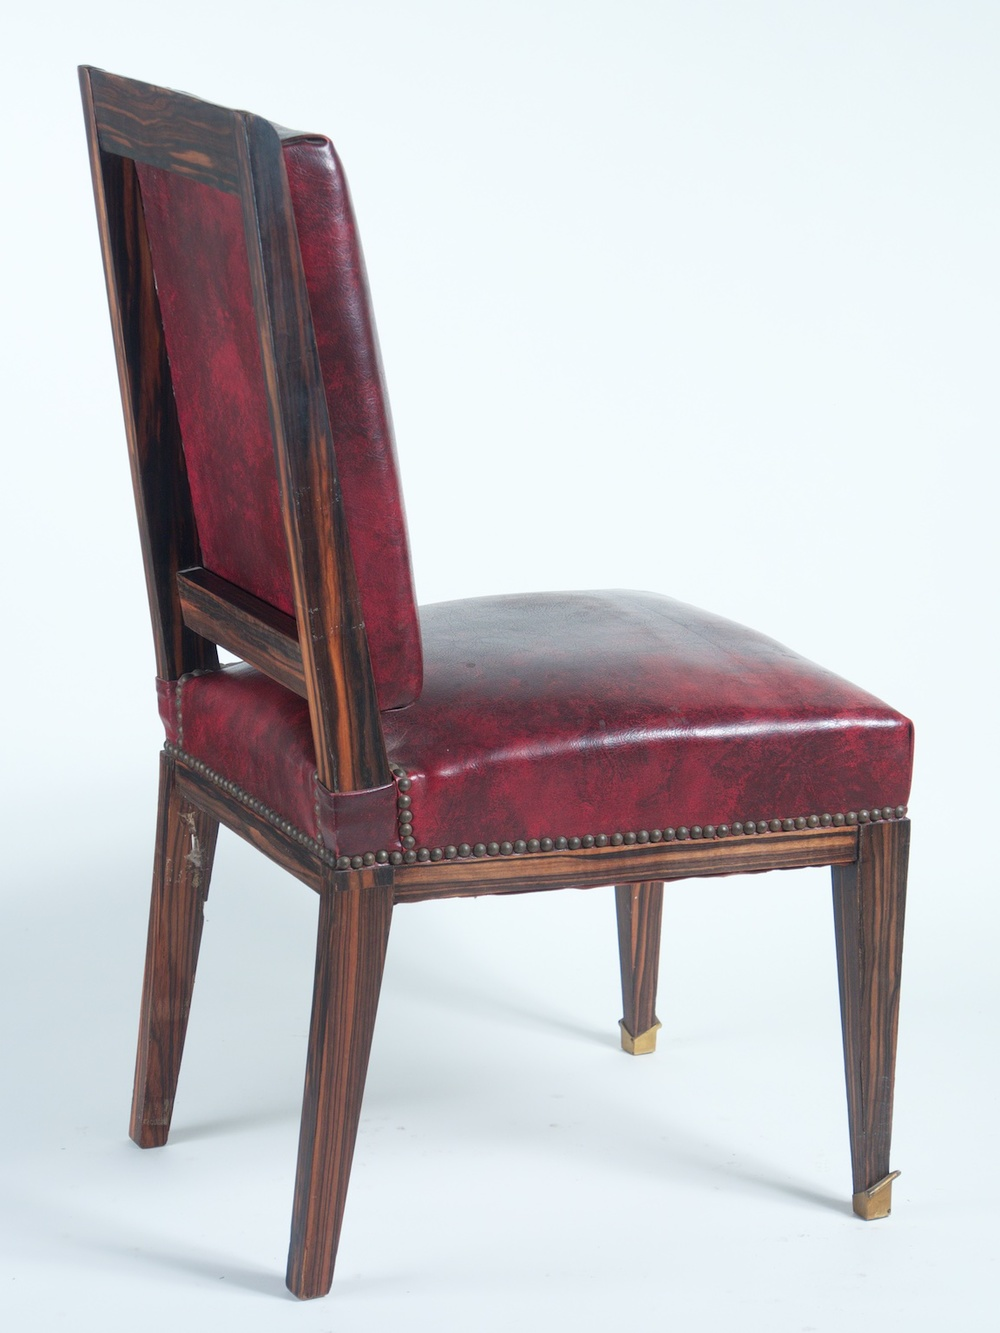 Maxime Old Set Of 6 Dining Chairs (#1200). Maxime Old Dining Chairs  Macassar Ebony ...